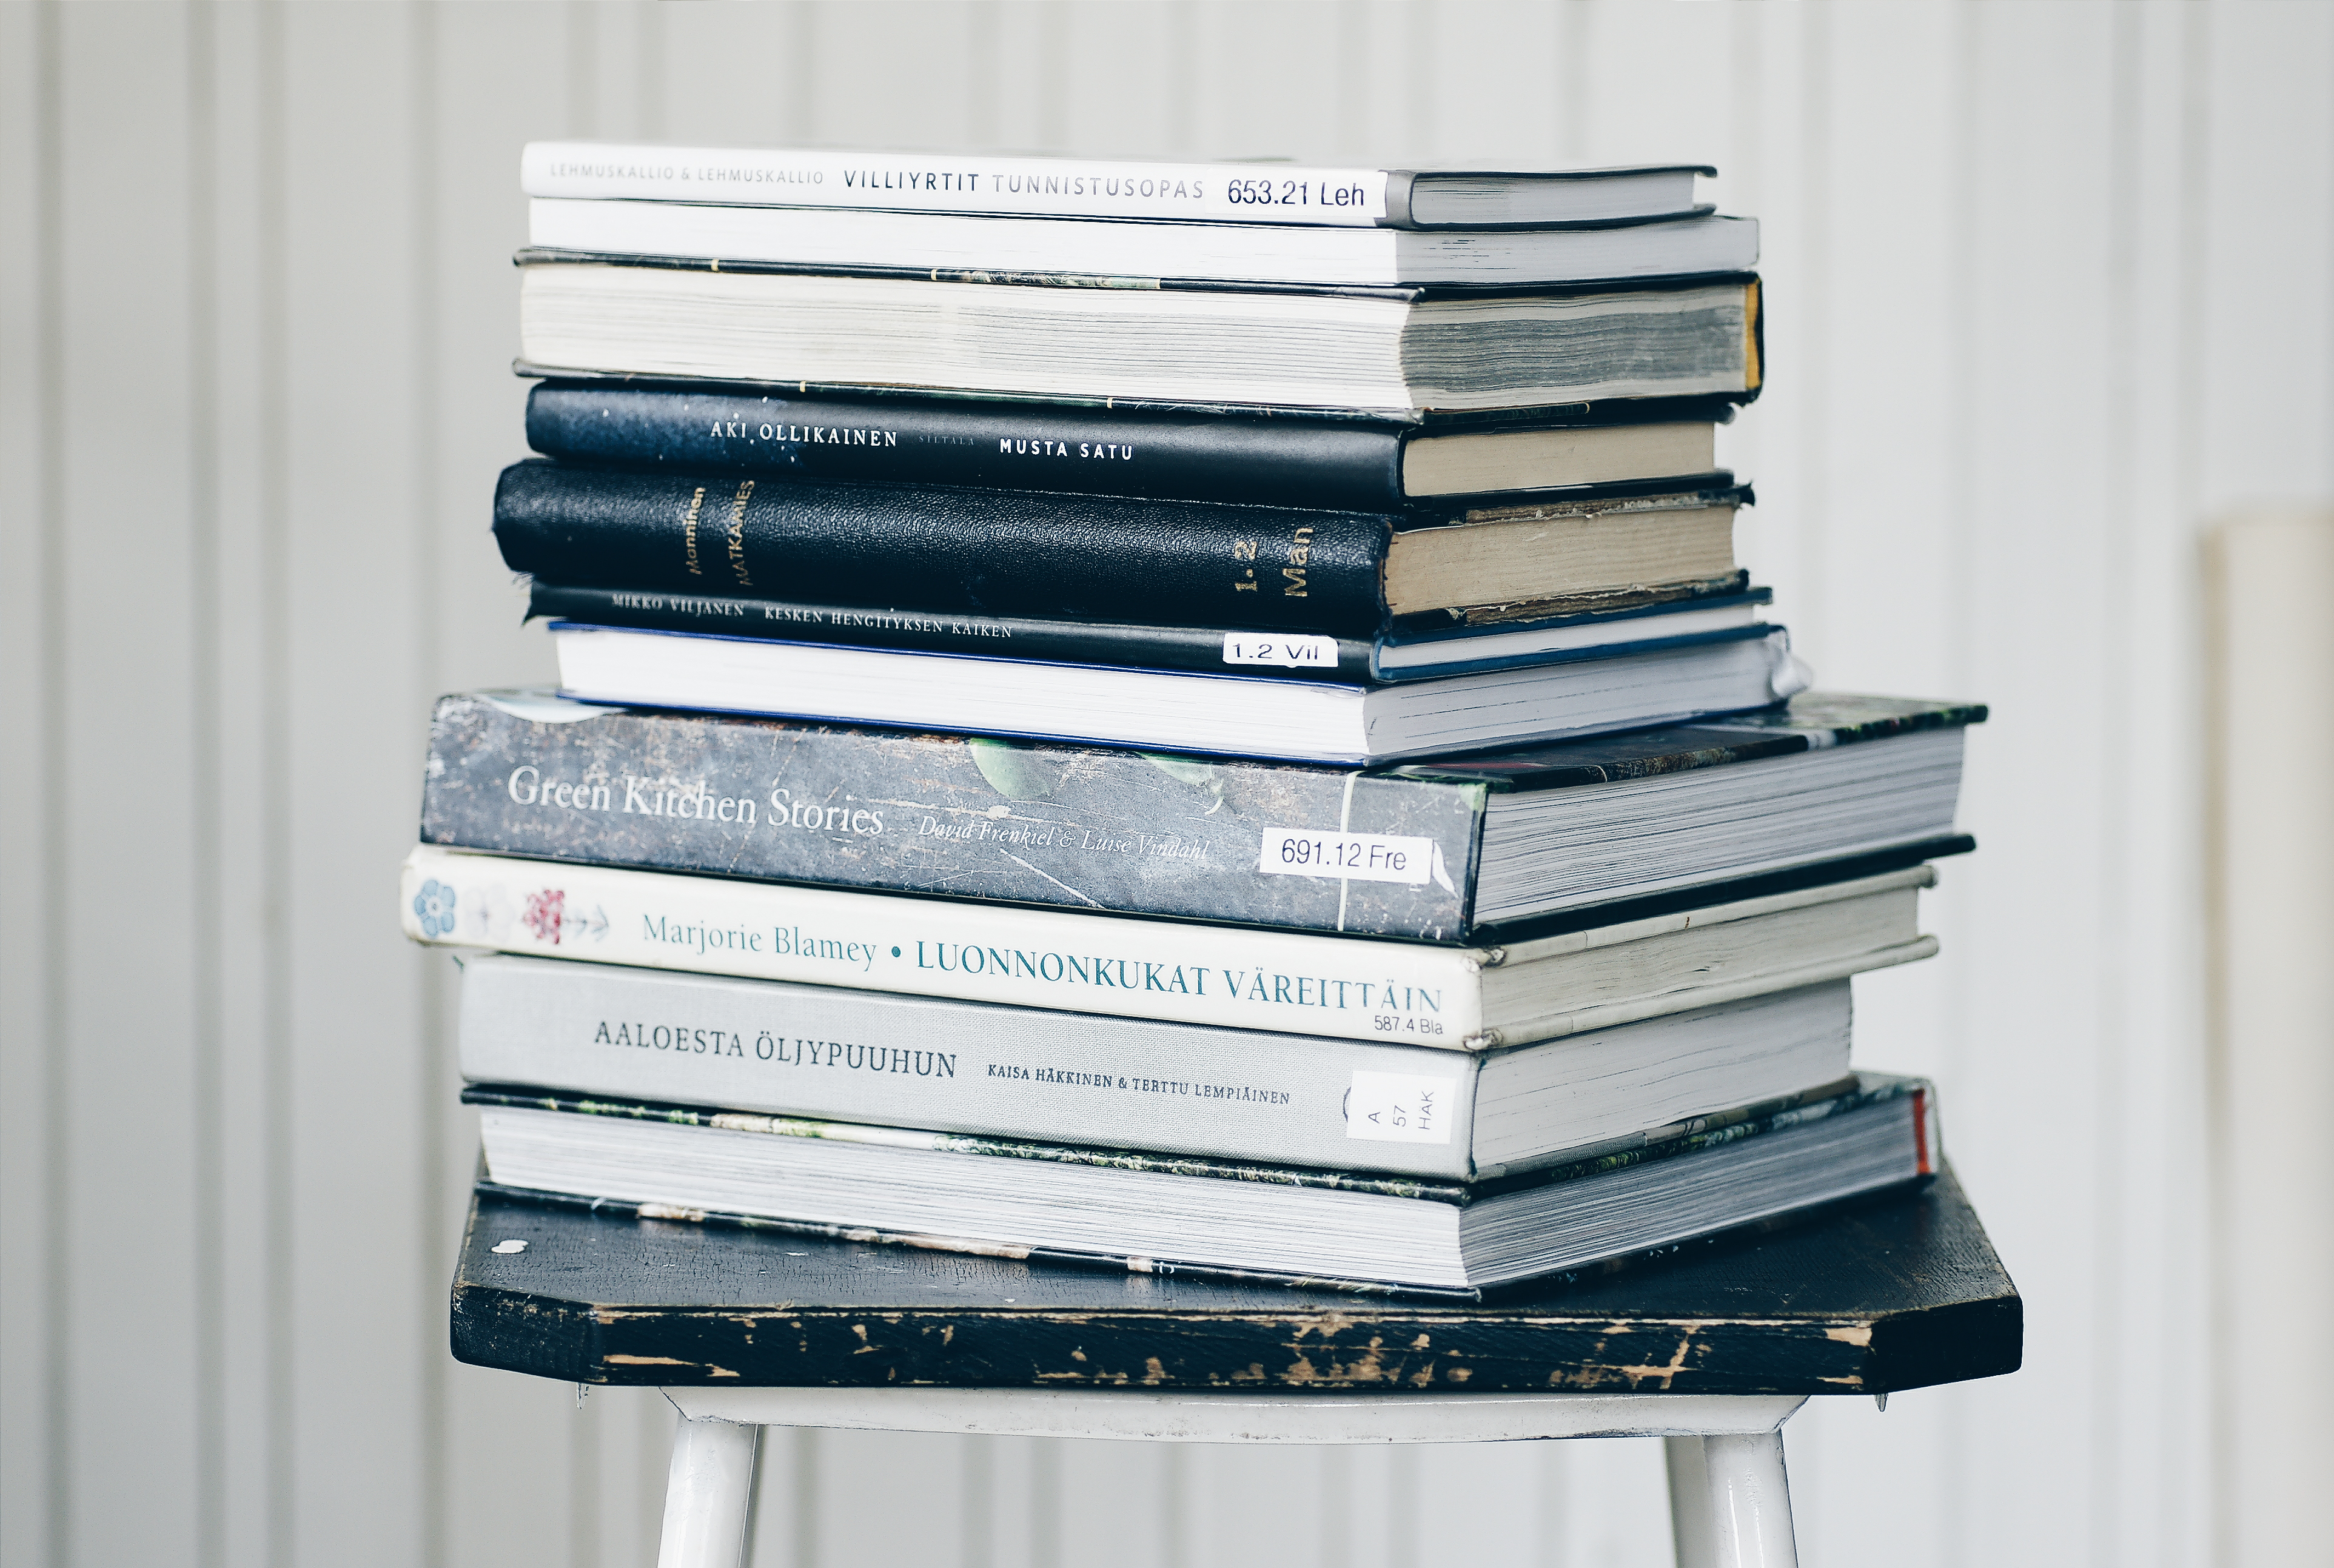 A pile of library books